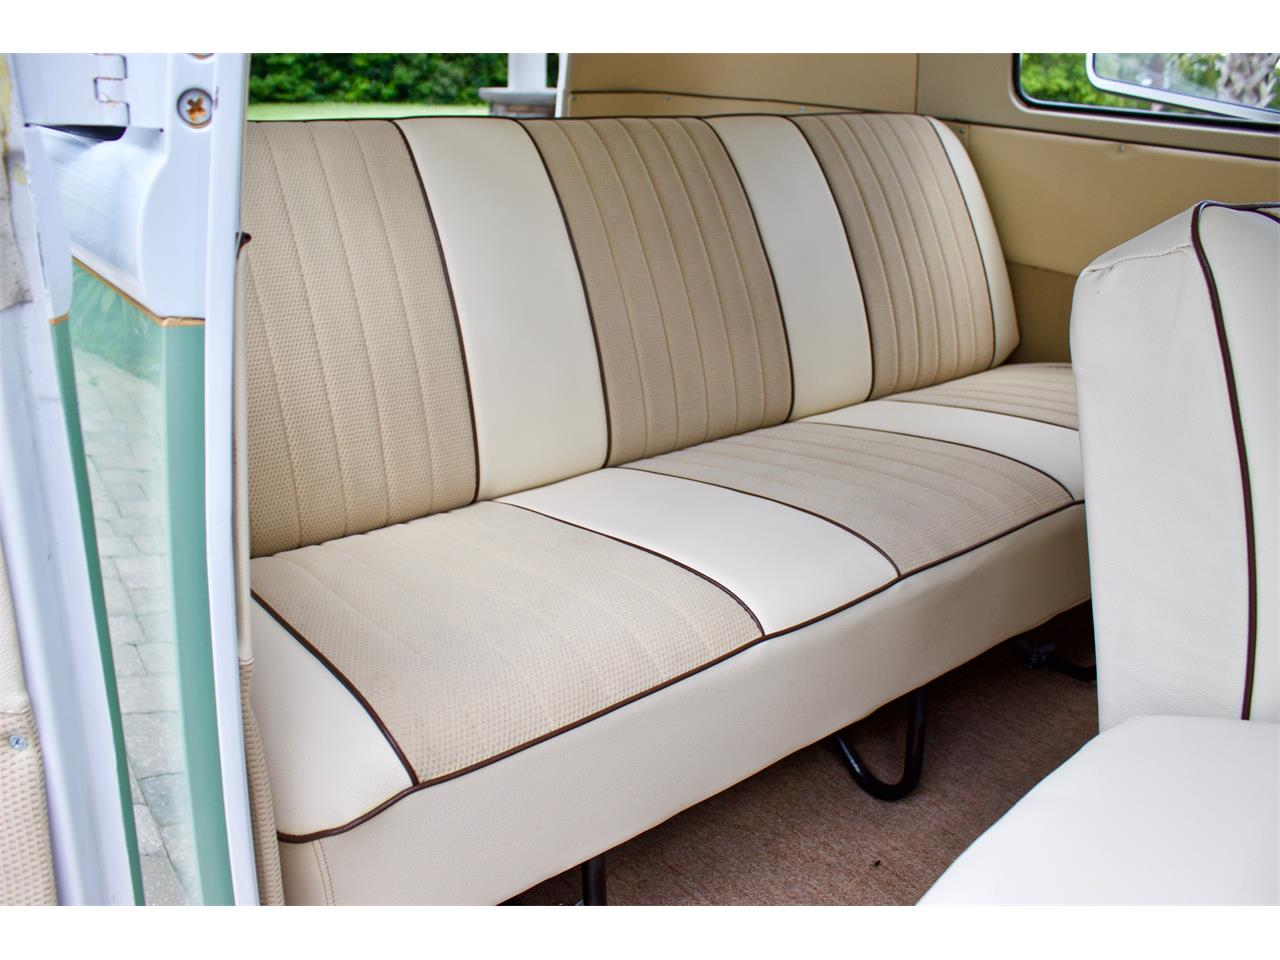 Large Picture of '62 Volkswagen Bus located in Florida - $59,950.00 - Q2DH